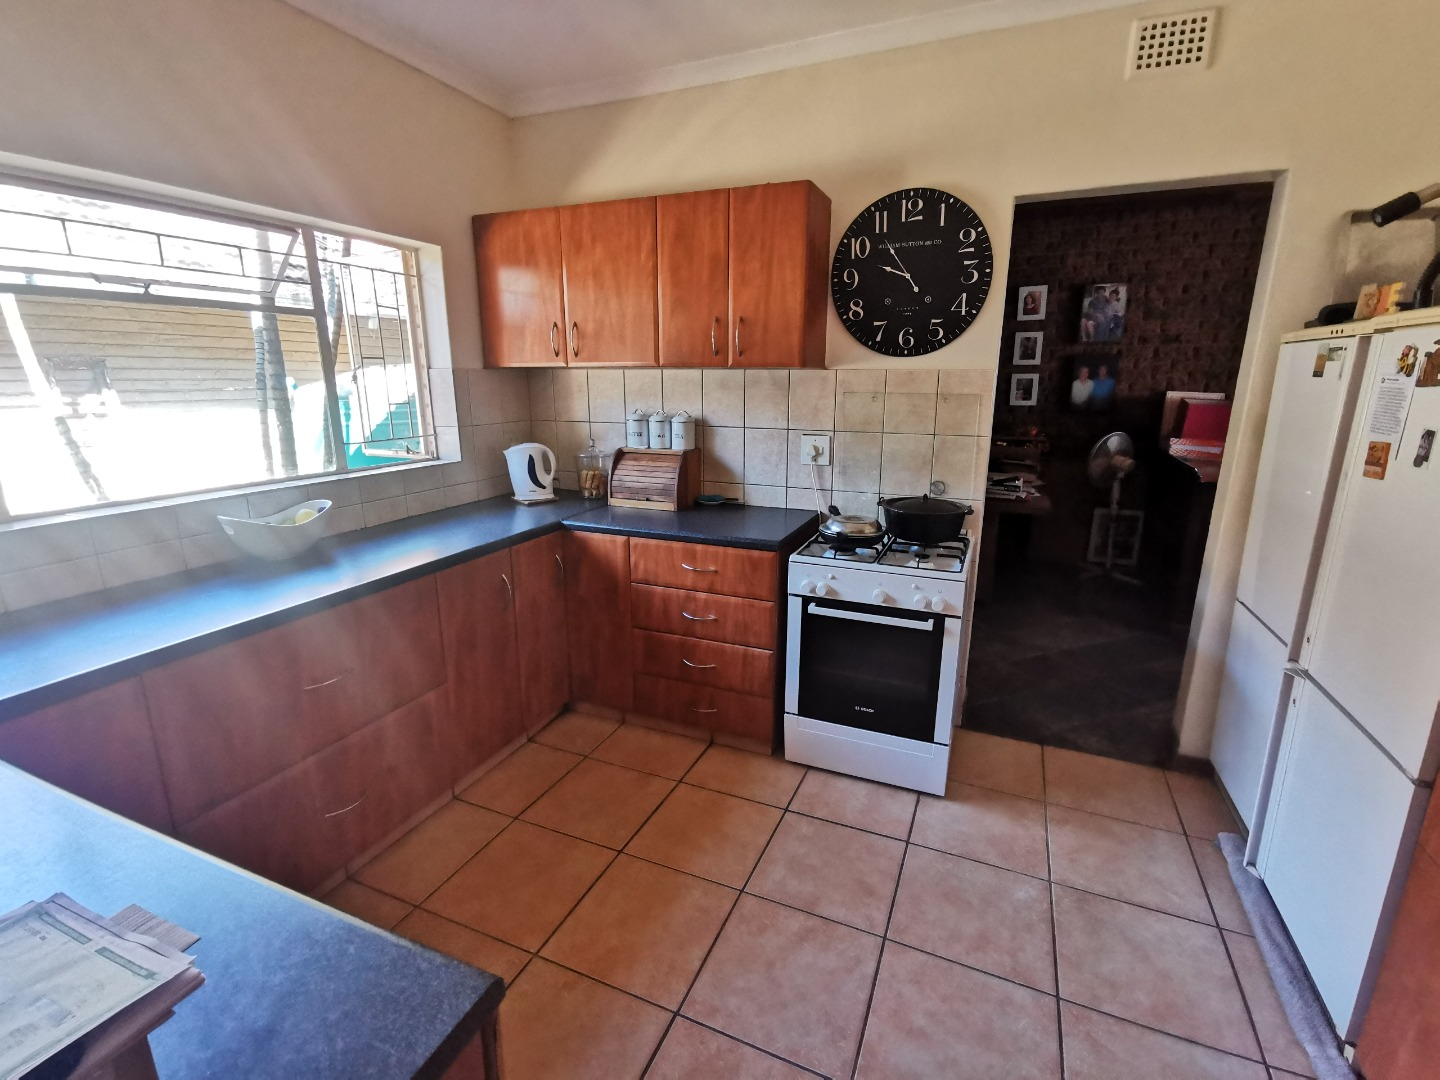 4 Bedroom House For Sale in Chroompark